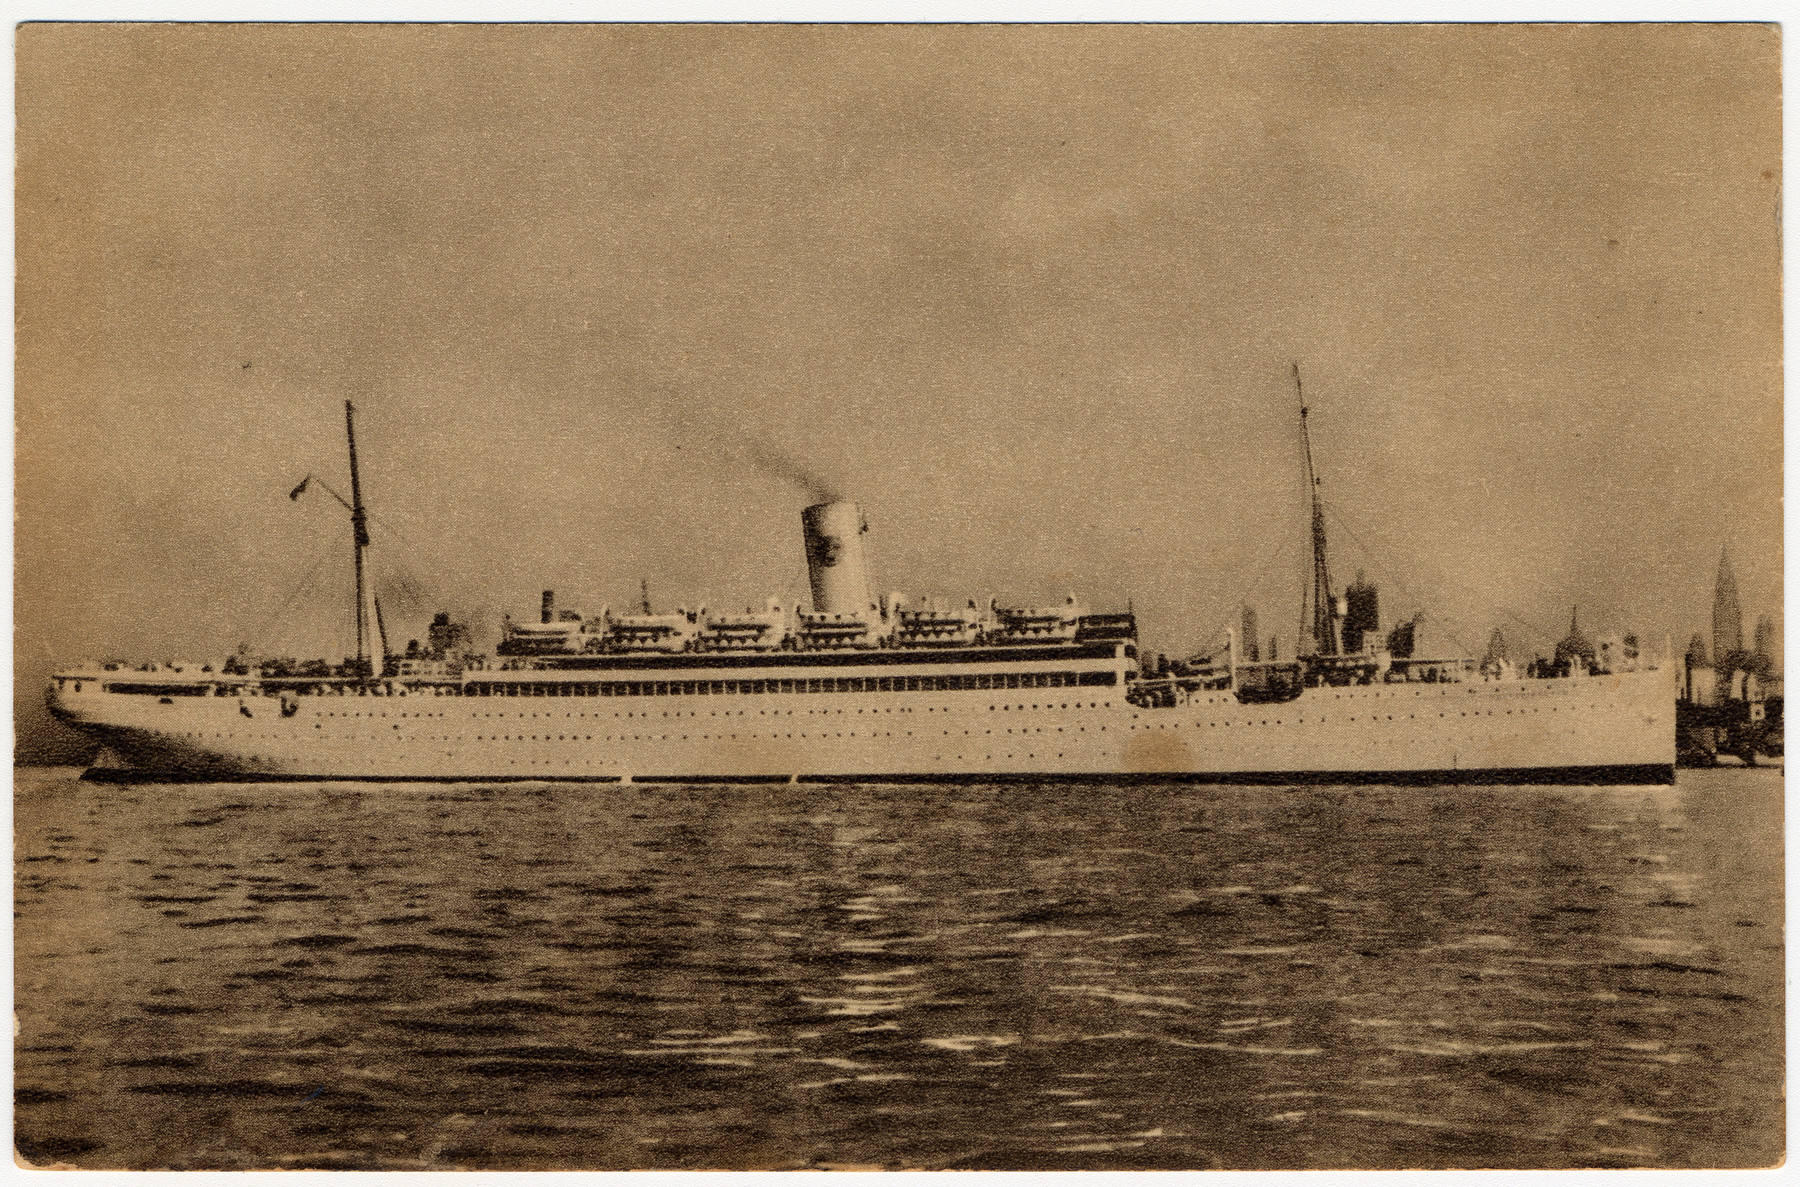 View of the Swedish ship, the S.S. Dottningholm, the ship that brought Henry Kolber to the United States.